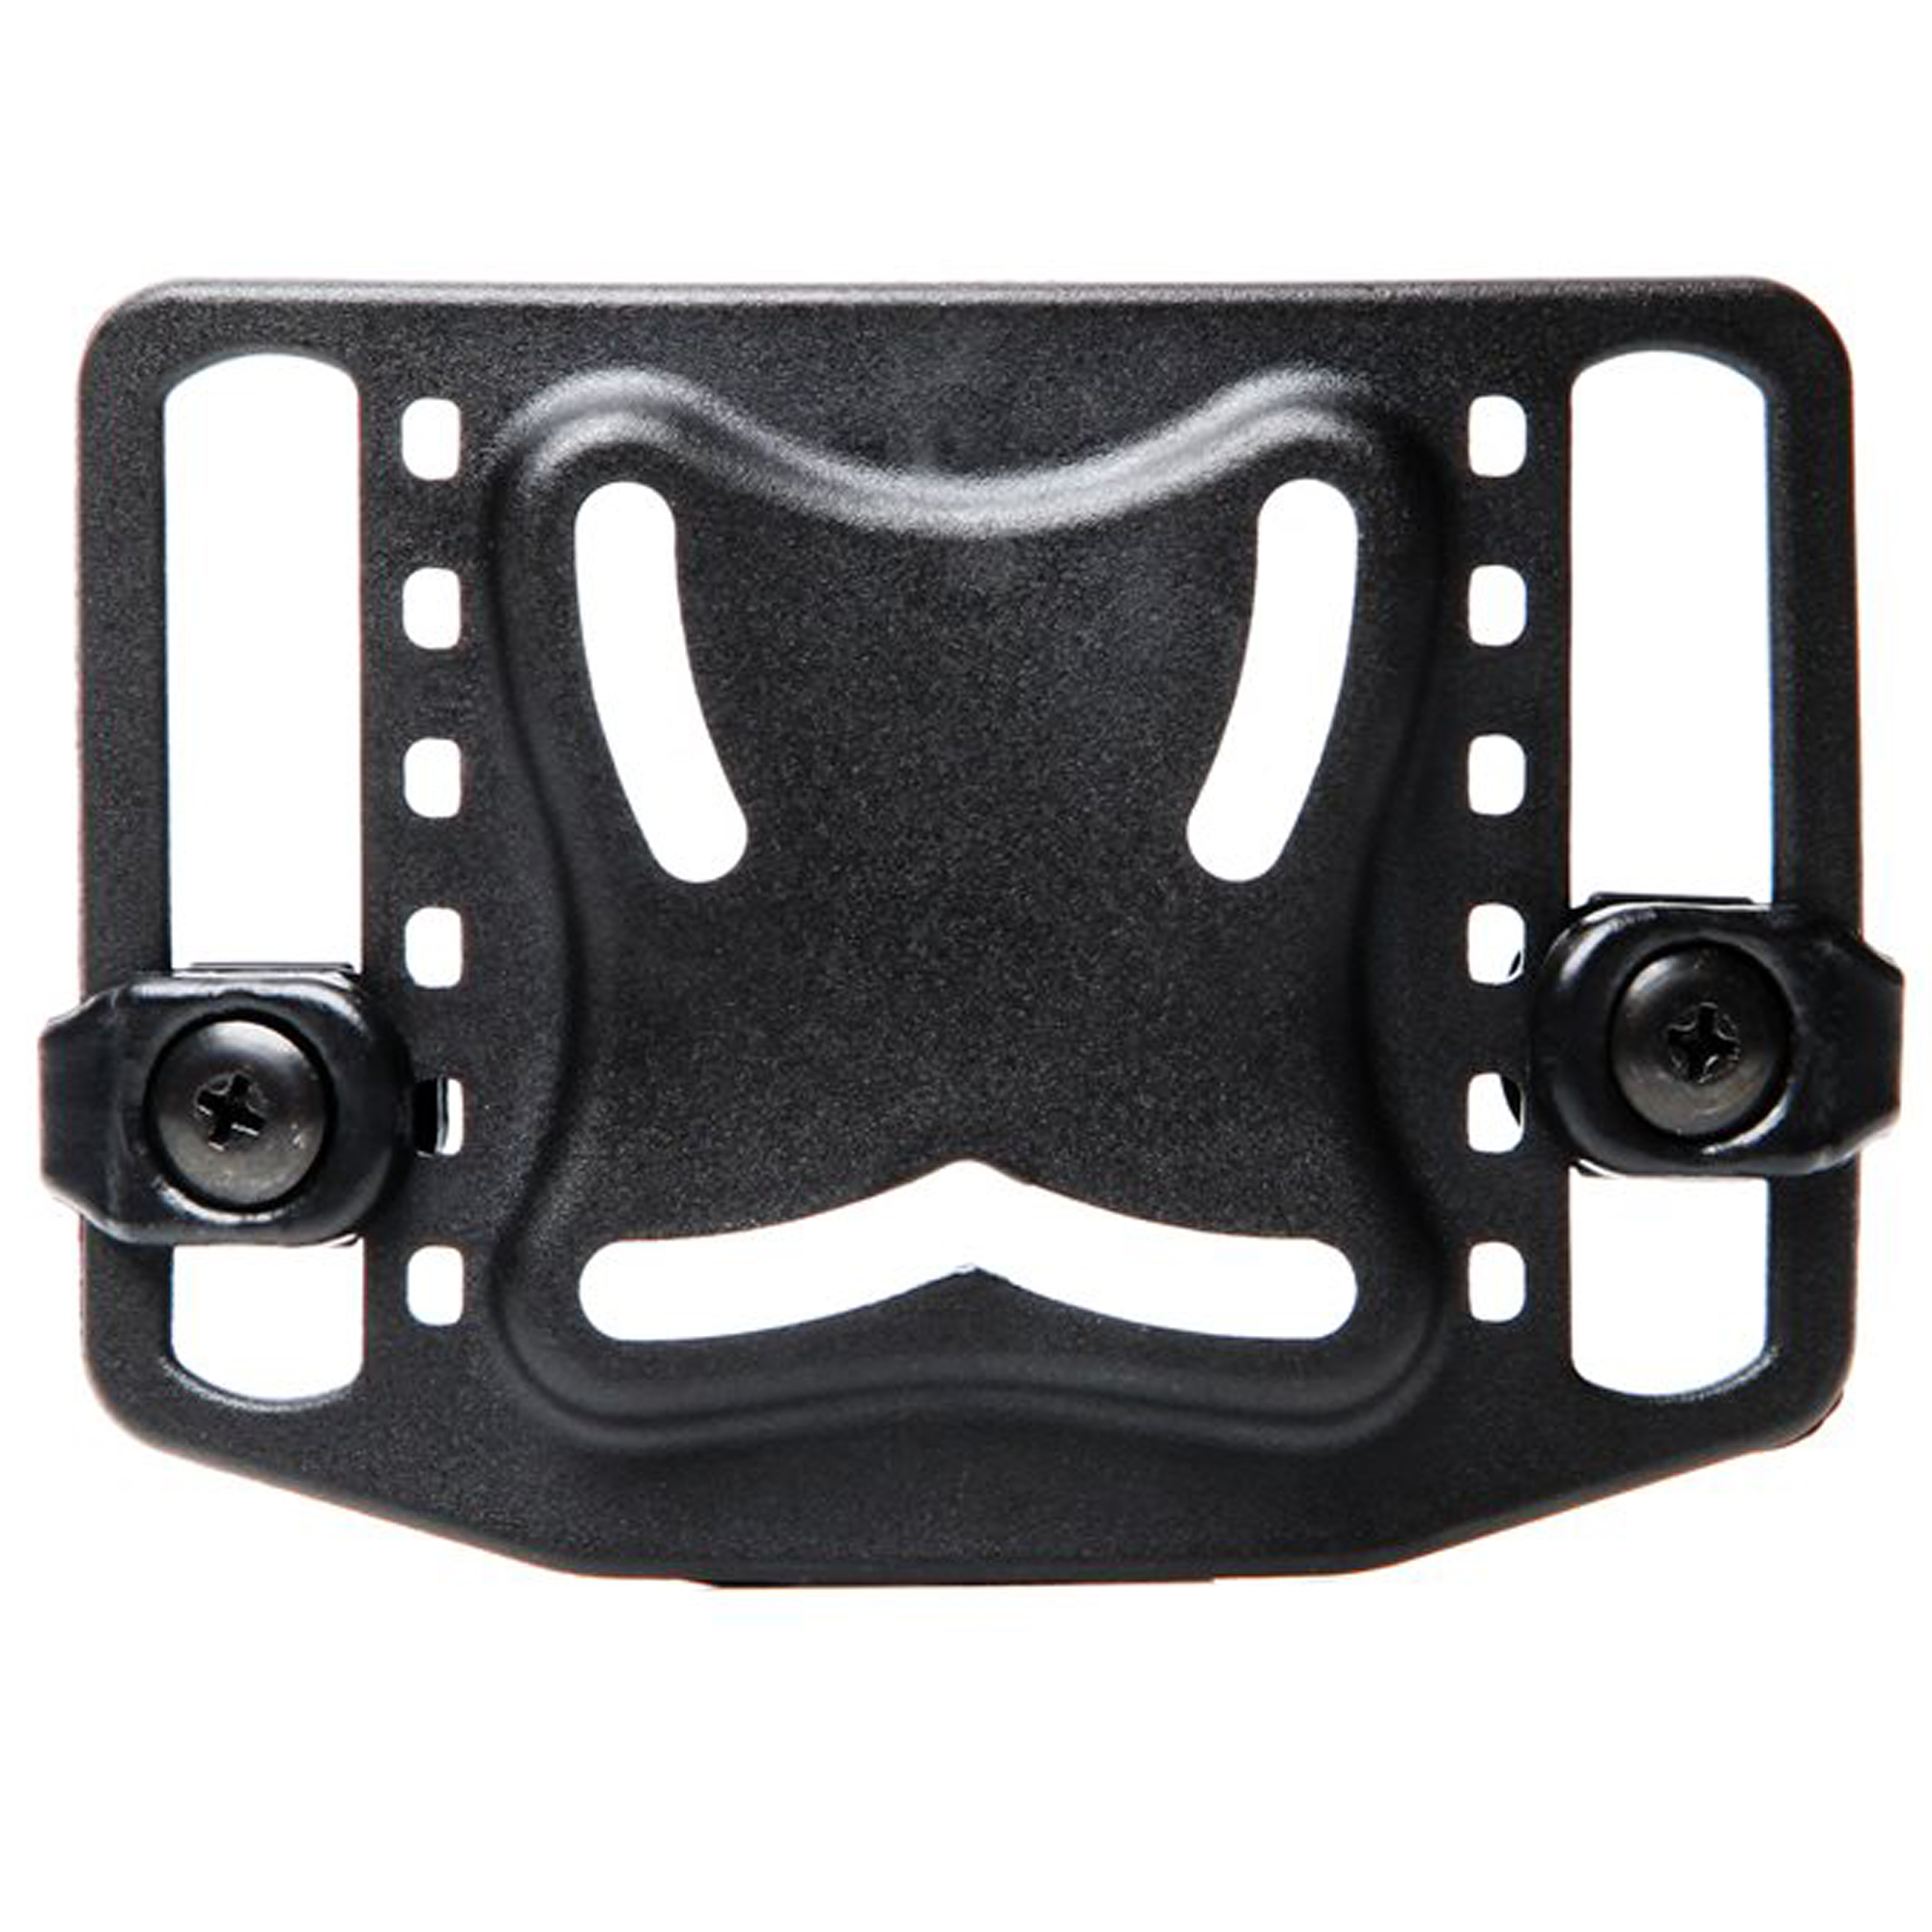 """Designed to fit any BLACKHAWK(R) injection-molded concealment holster"""" this Belt Loop Platform comes with mounting screws."""